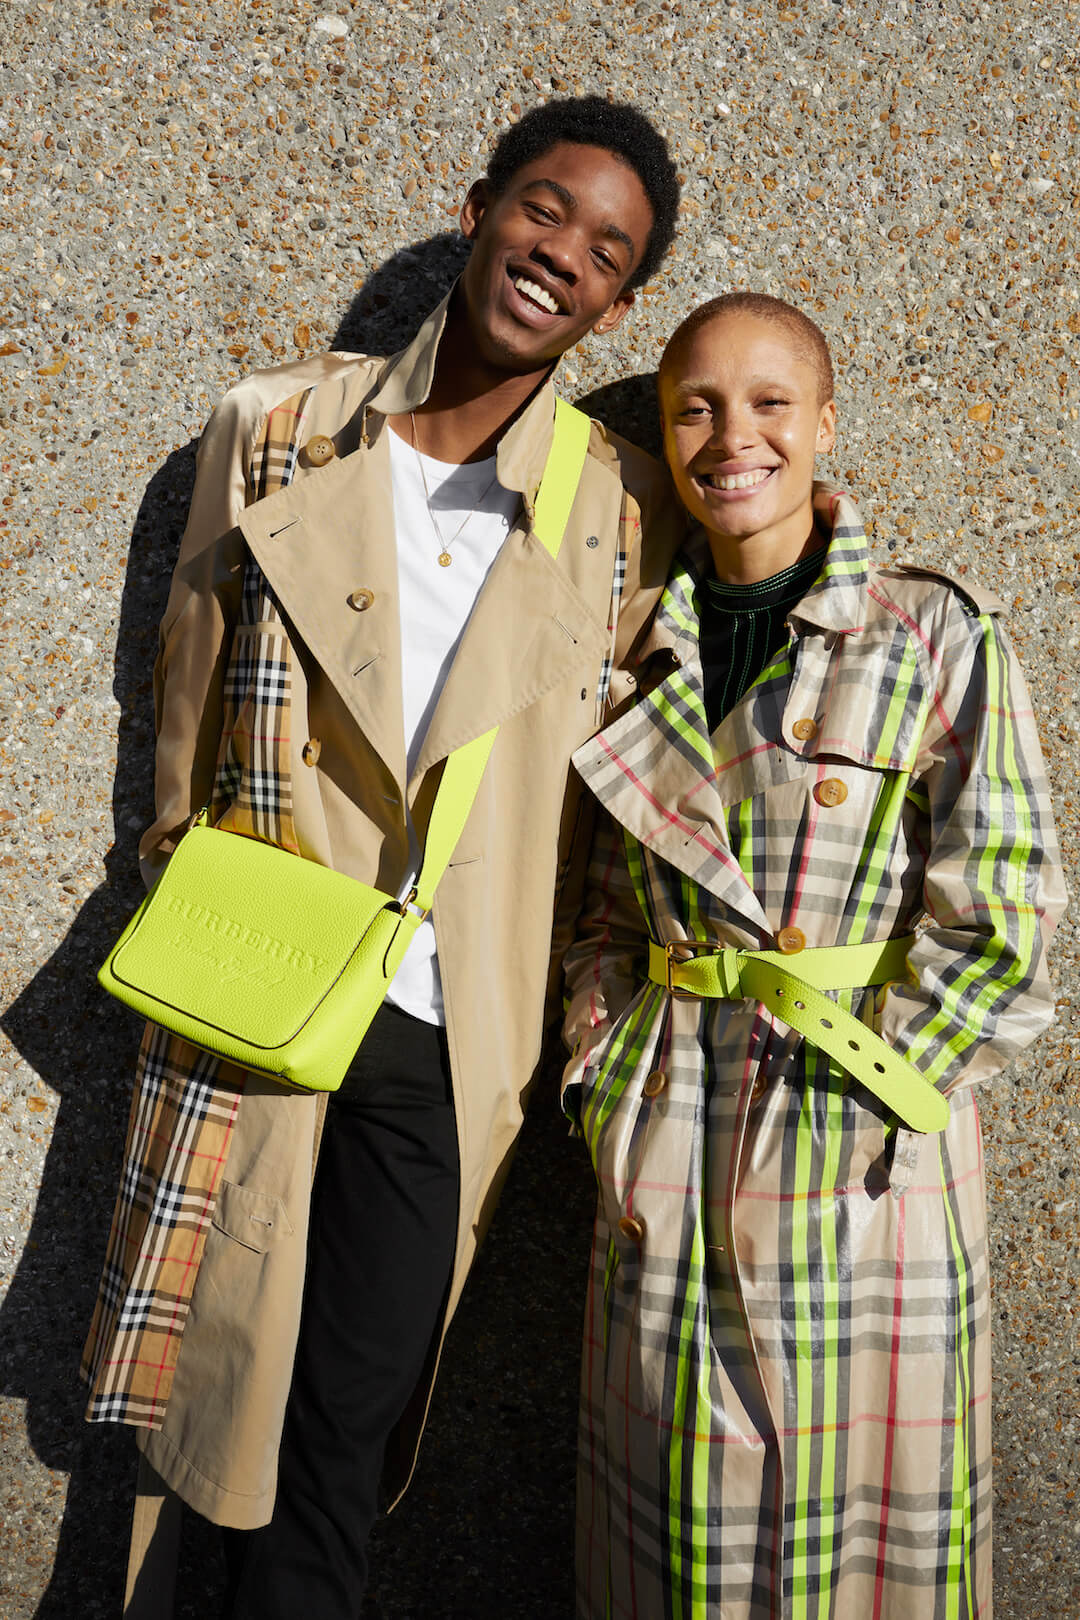 Montell Martin wearing a trench coat and neon soft leather crossbody bag and Adwoa Aboah wearing a laminated fluoro-trimmed check trench coat for Burberry captured by Juergen Teller